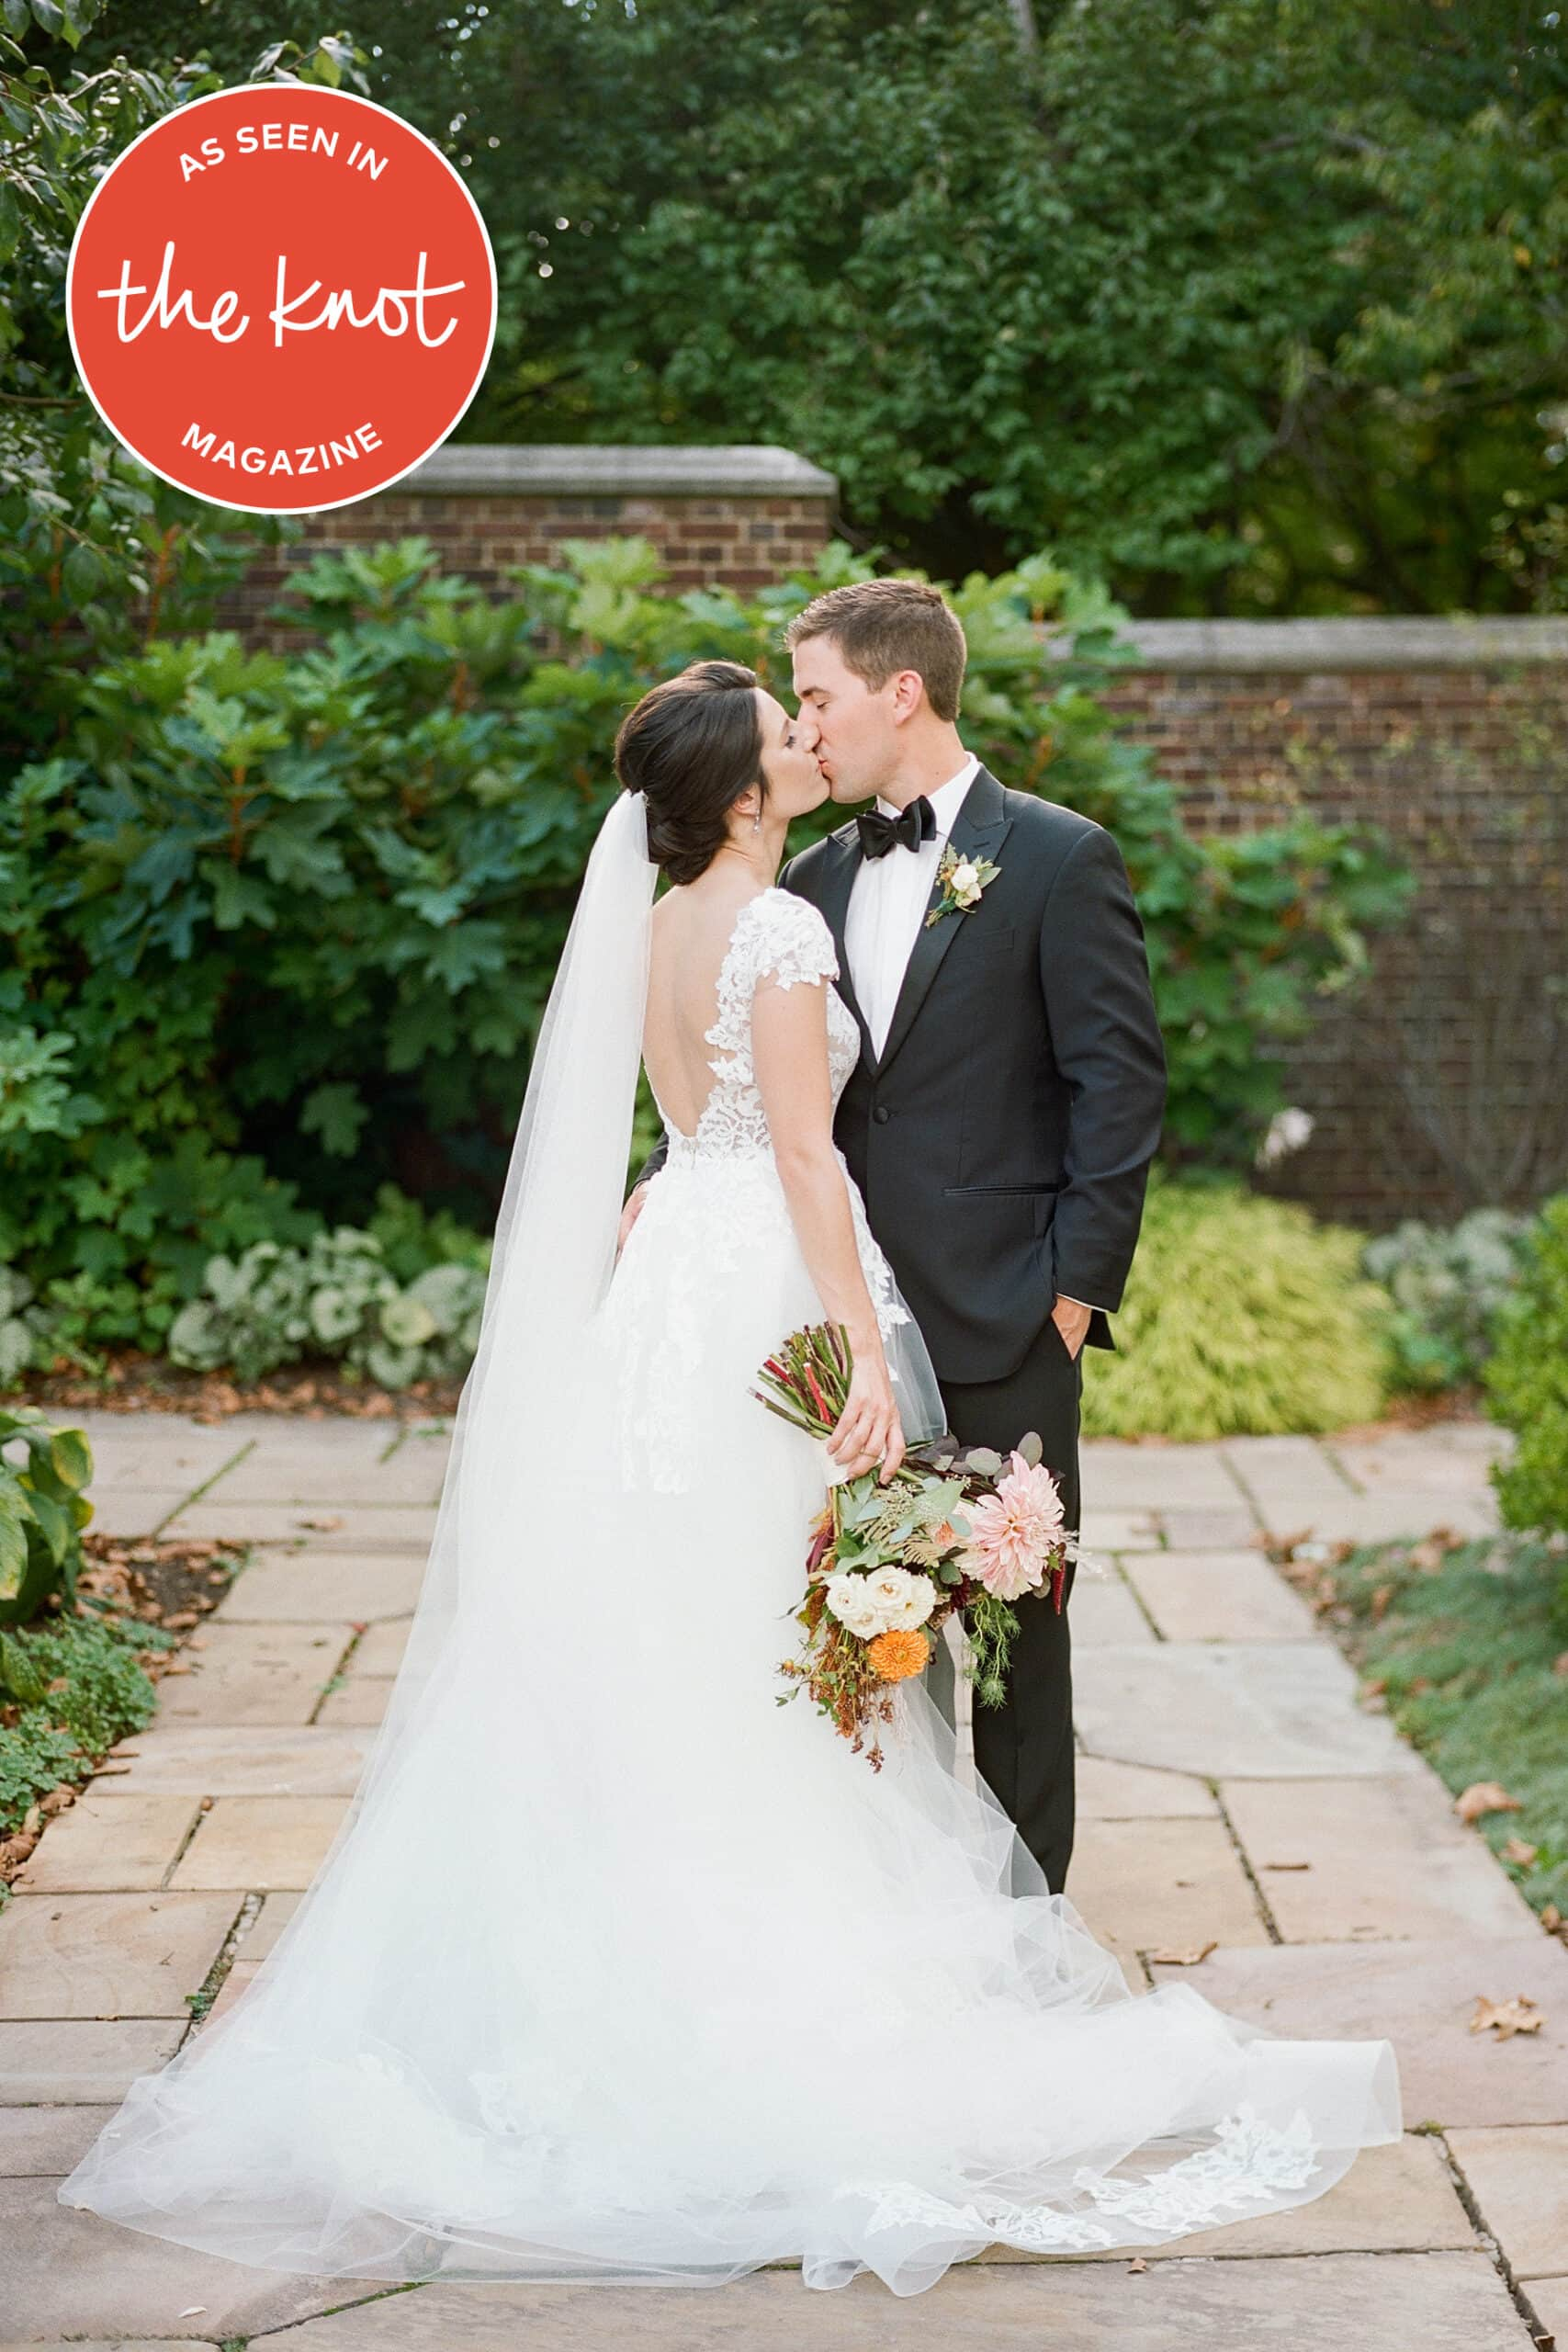 Bride and groom standing in the walled garden kissing